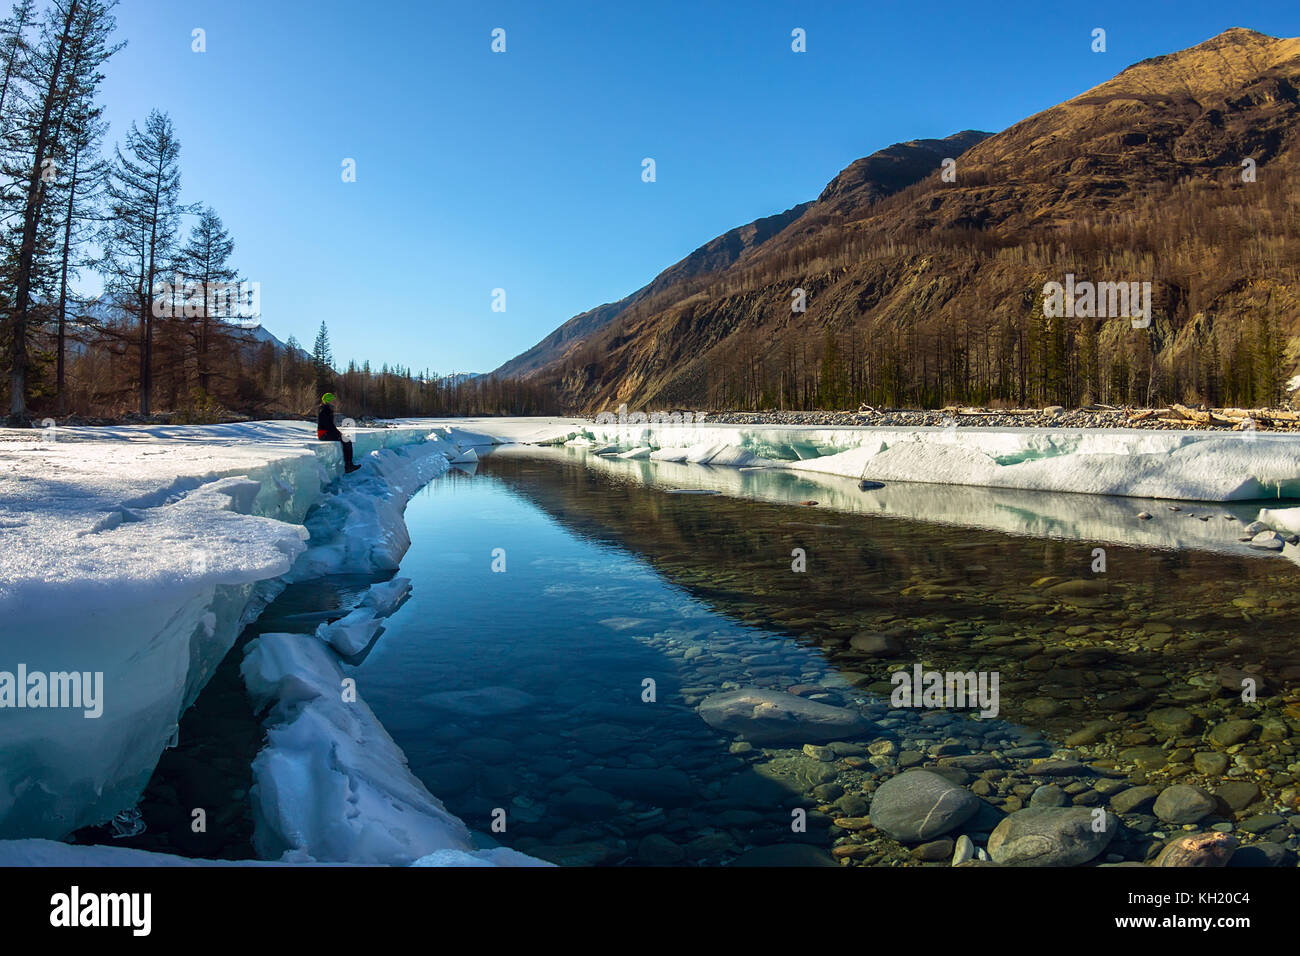 Girl sitting on the glacier ice melts in the spring on the river in the mountains. - Stock Image